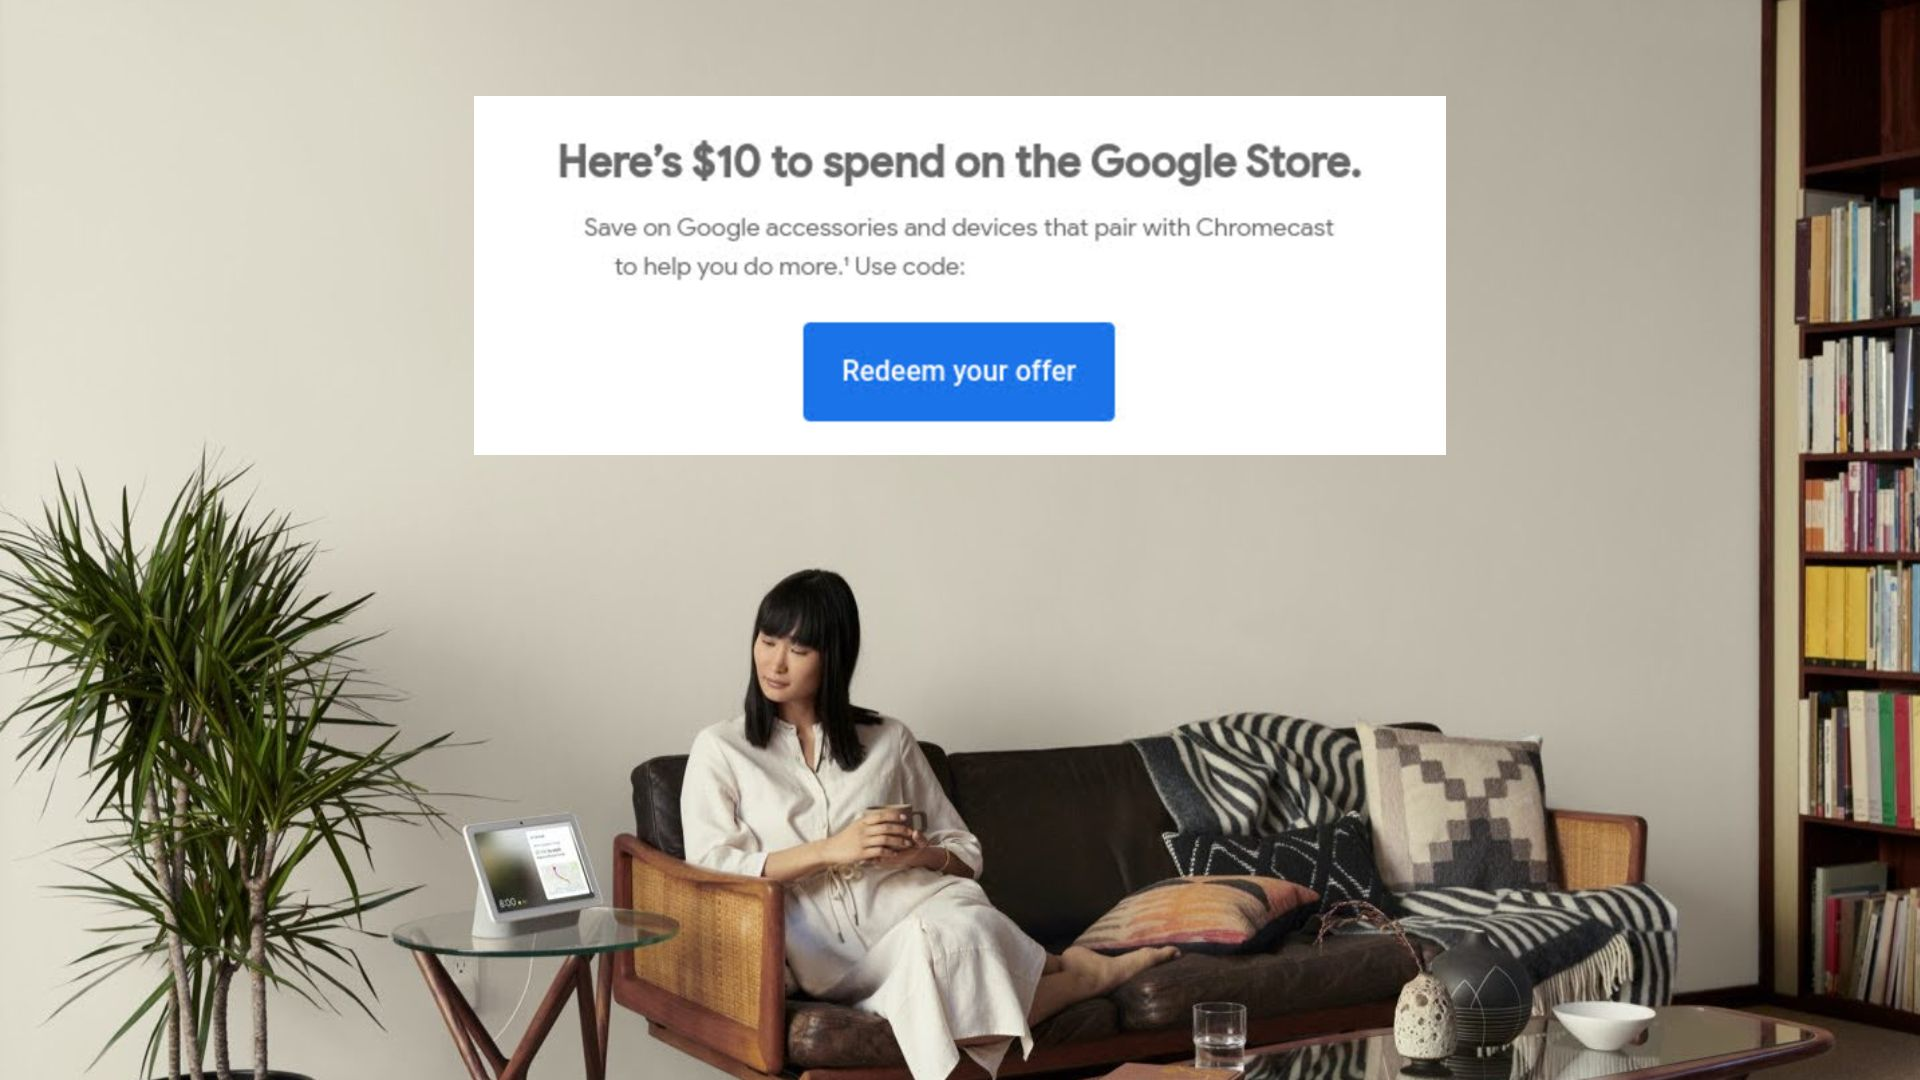 [Updated] Some Chromecast with Google TV owners are receiving a free $10 Google Store Credit via email